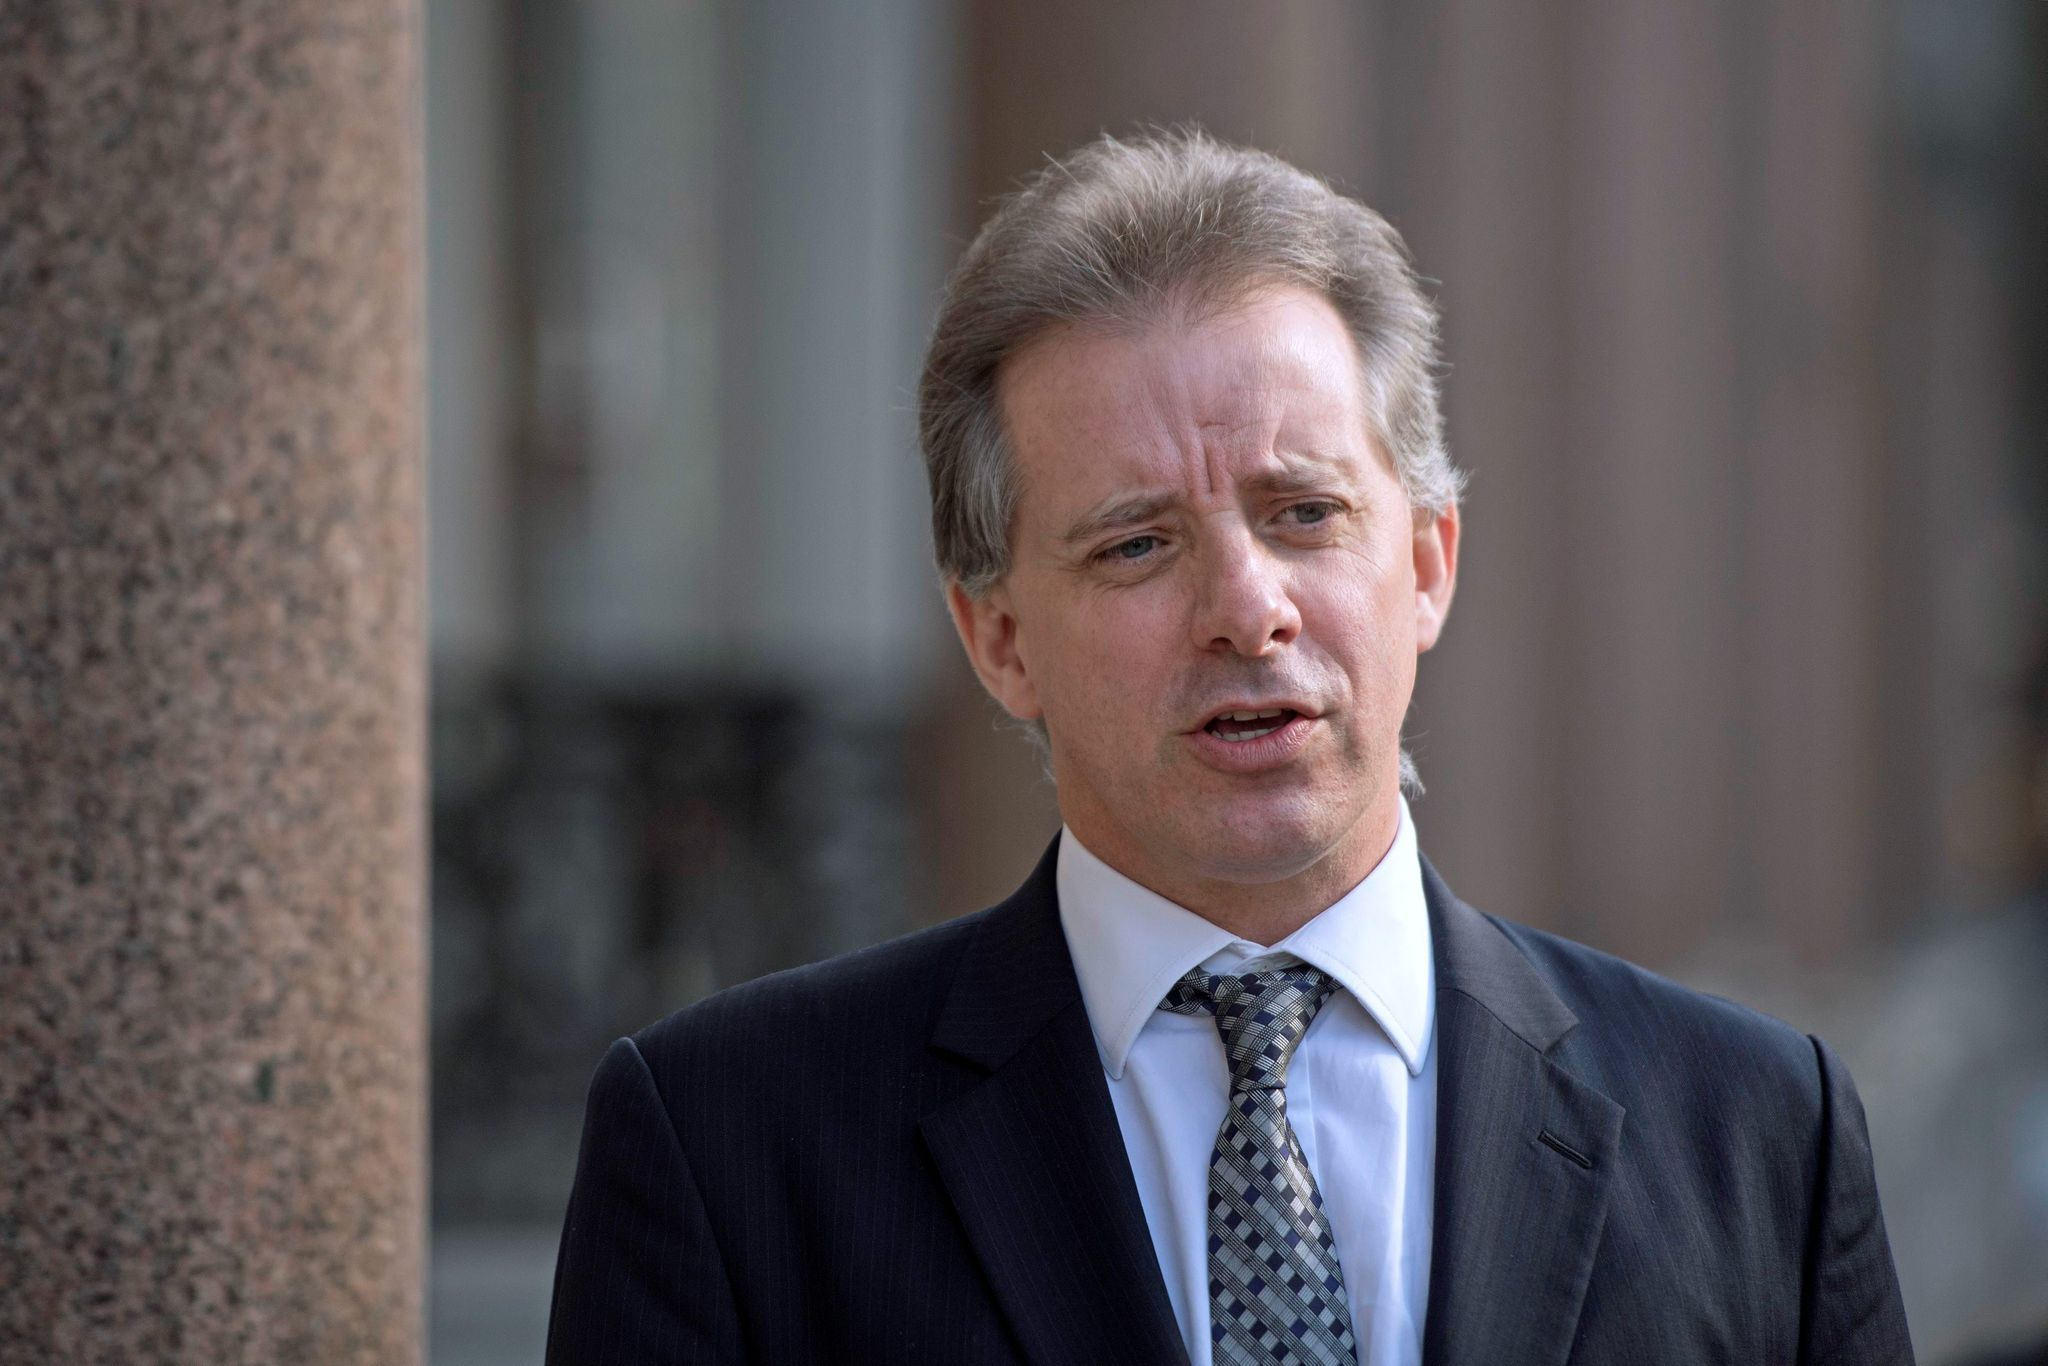 Dossier fails the test of time; Trump-Russia collusion claims now called 'likely false'